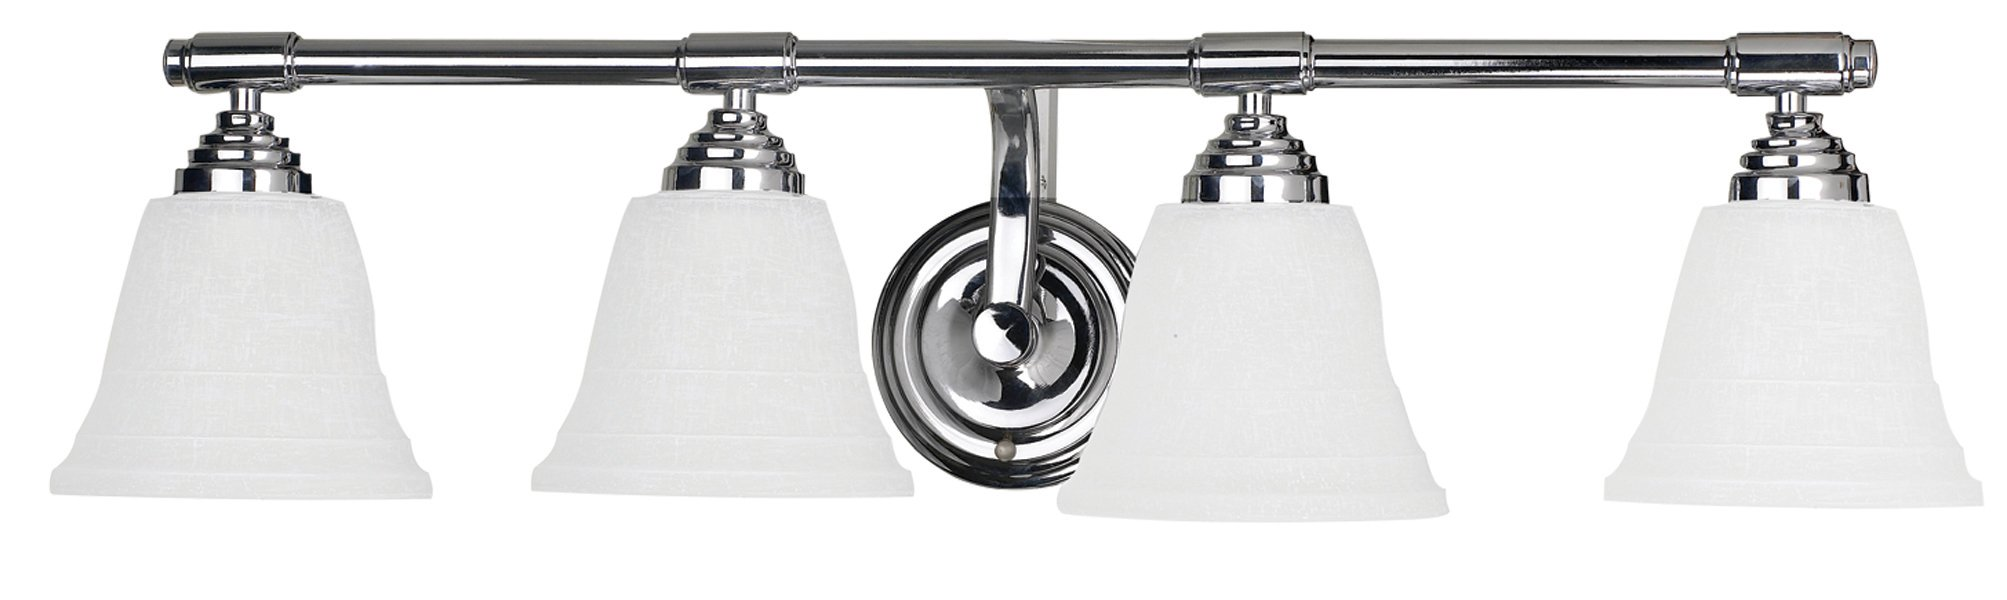 Yosemite Home Decor 5924CH 27.5-Inch 4-Light Bathroom Vanity, Chrome - Width 27.5-Inch by height 7.25-Inch by depth 7.25-Inch Requires (4) medium-based, 100-Watt incandescent bulbs (not included) Chrome frame with linen frosted glass - bathroom-lights, bathroom-fixtures-hardware, bathroom - 61sIicmoATL -